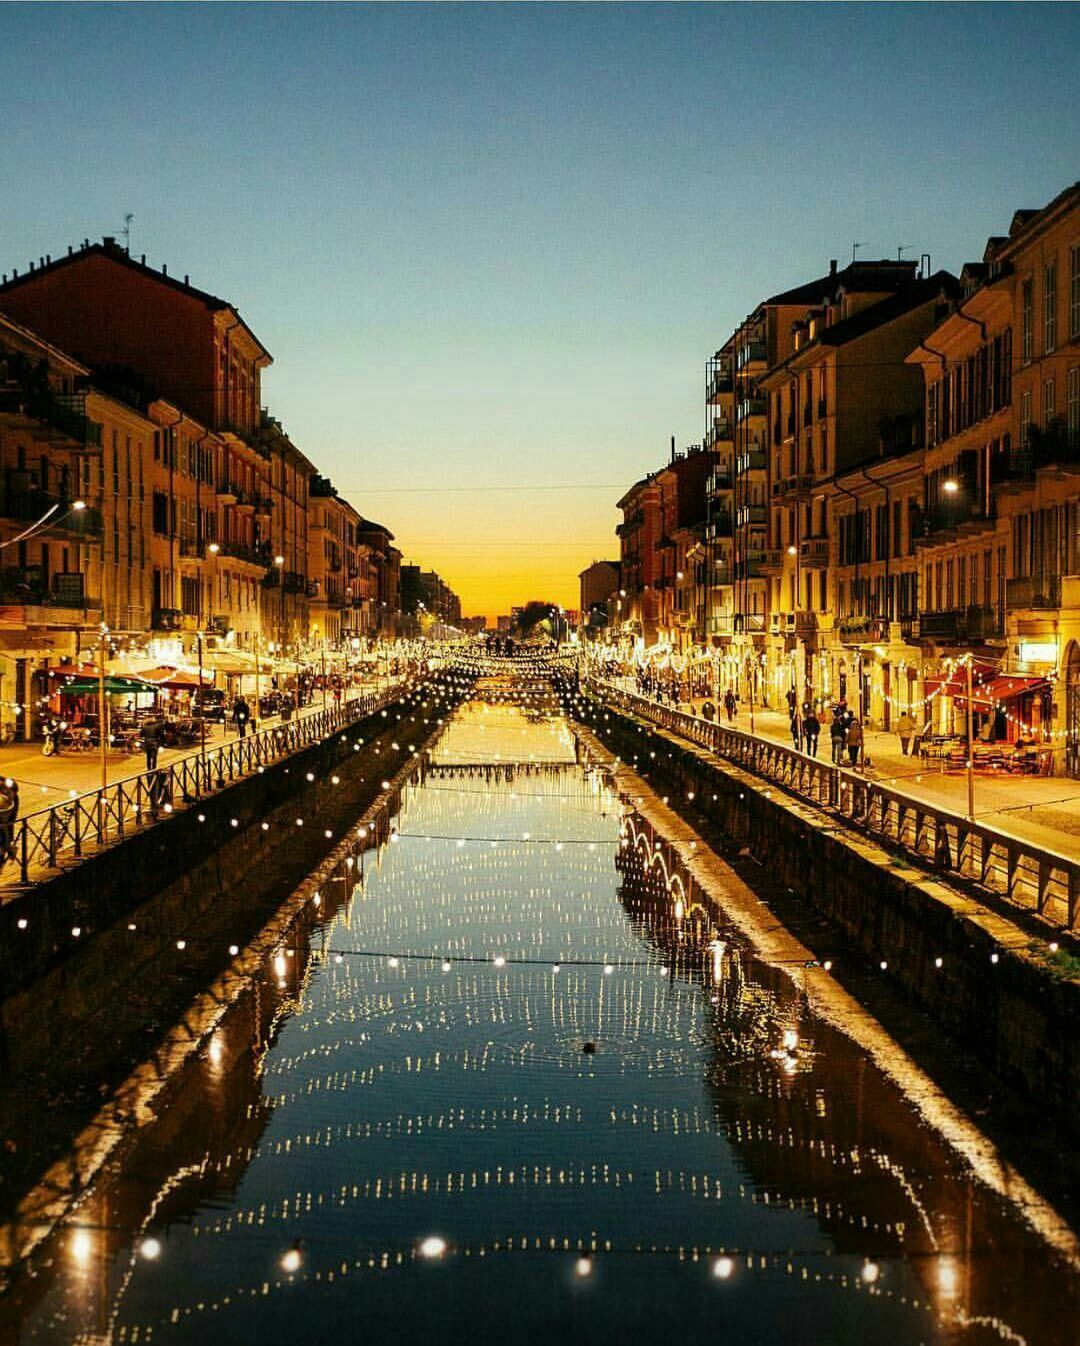 Top 5 Tips When Traveling Through Italy Www Paxtonvisuals Com Italy Photography Italy Travel Italy Vacation